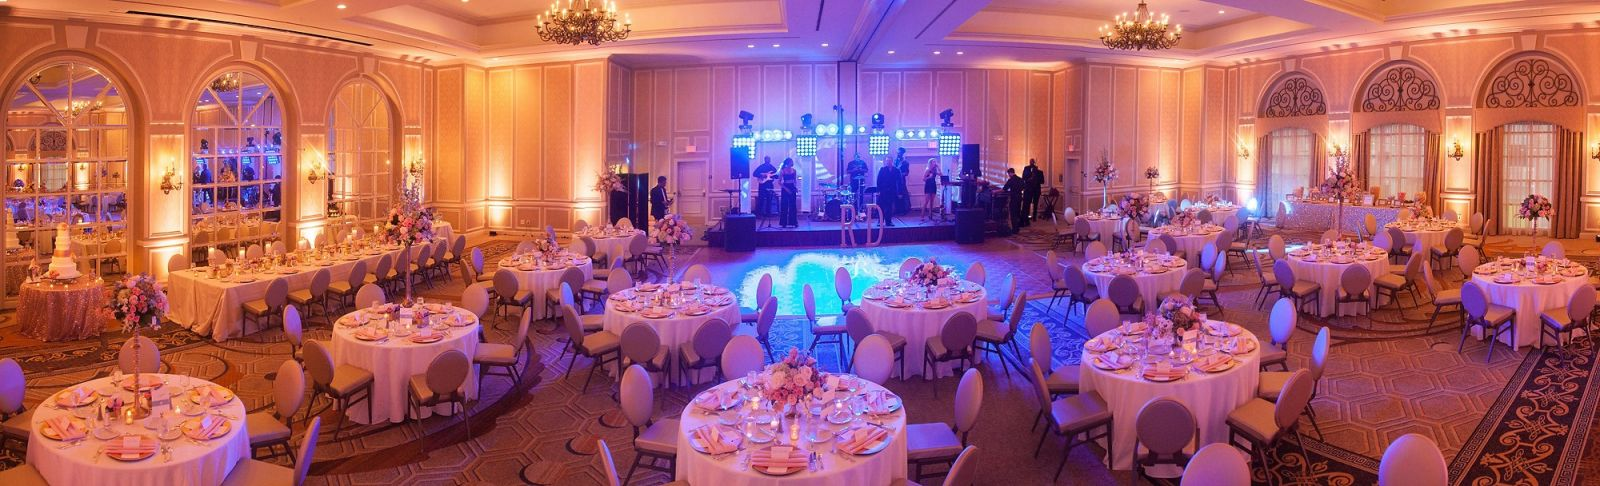 Dallas wedding at Adolphus Hotel Ballroom